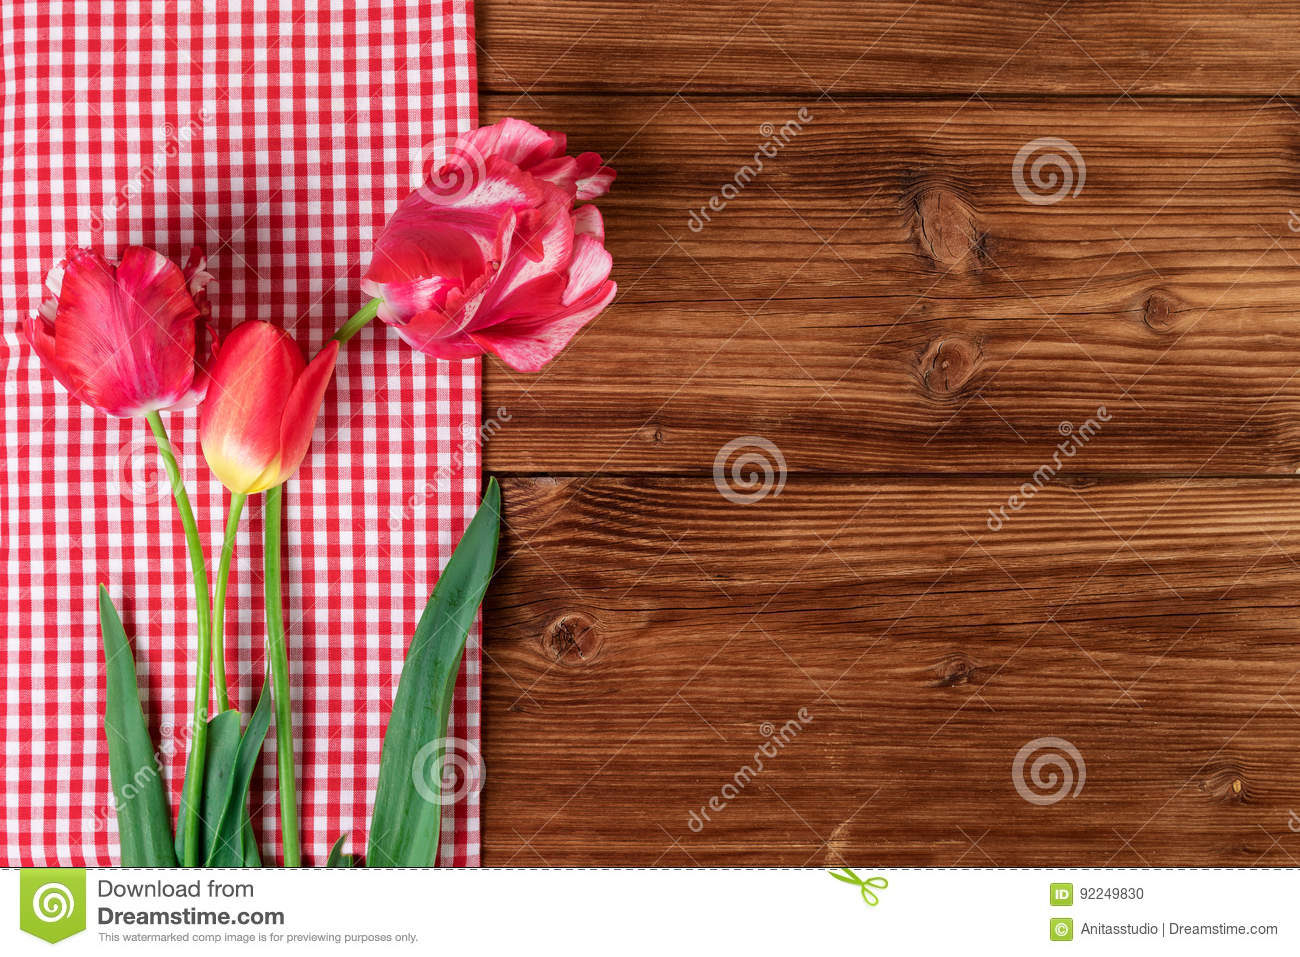 Tulips with red checkered tablecloth on country wooden background. Top view, text space